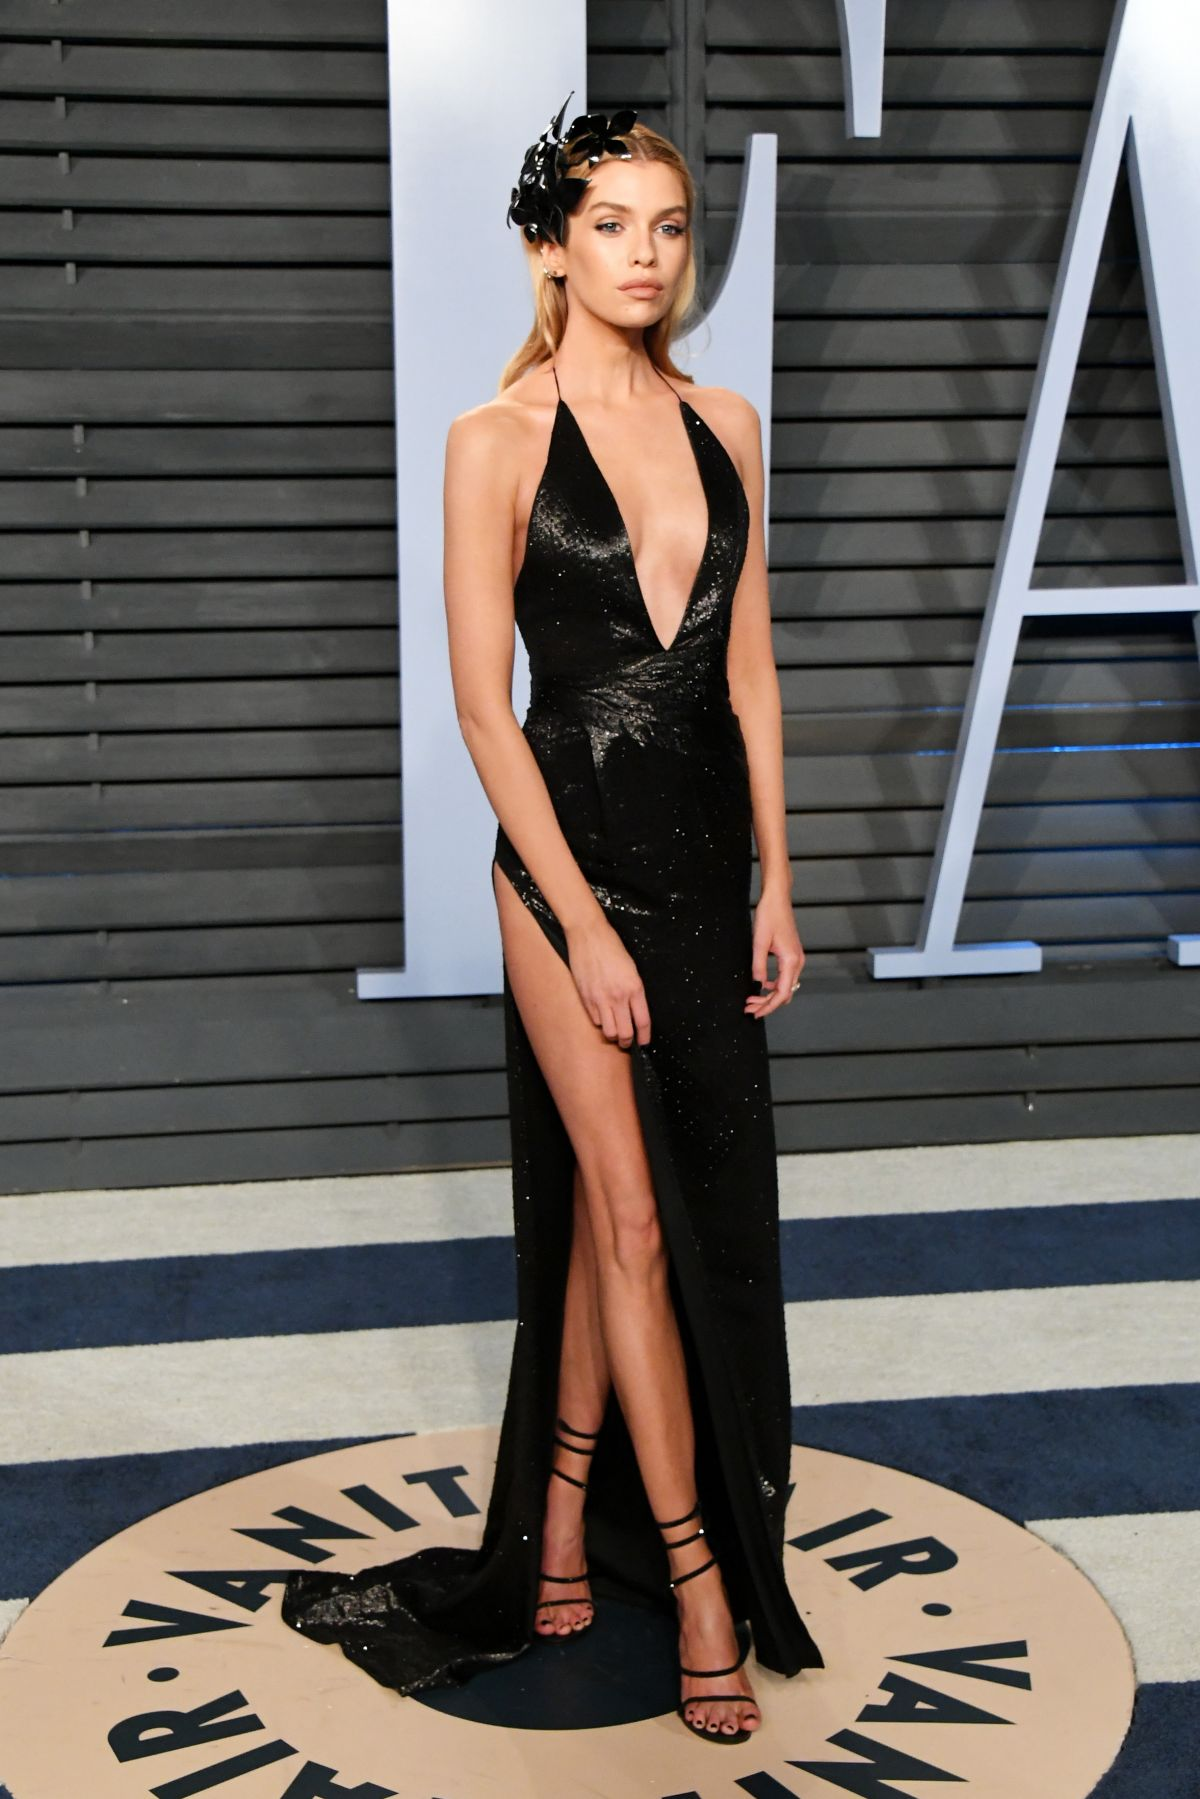 Who are the tallest women in Hollywood?